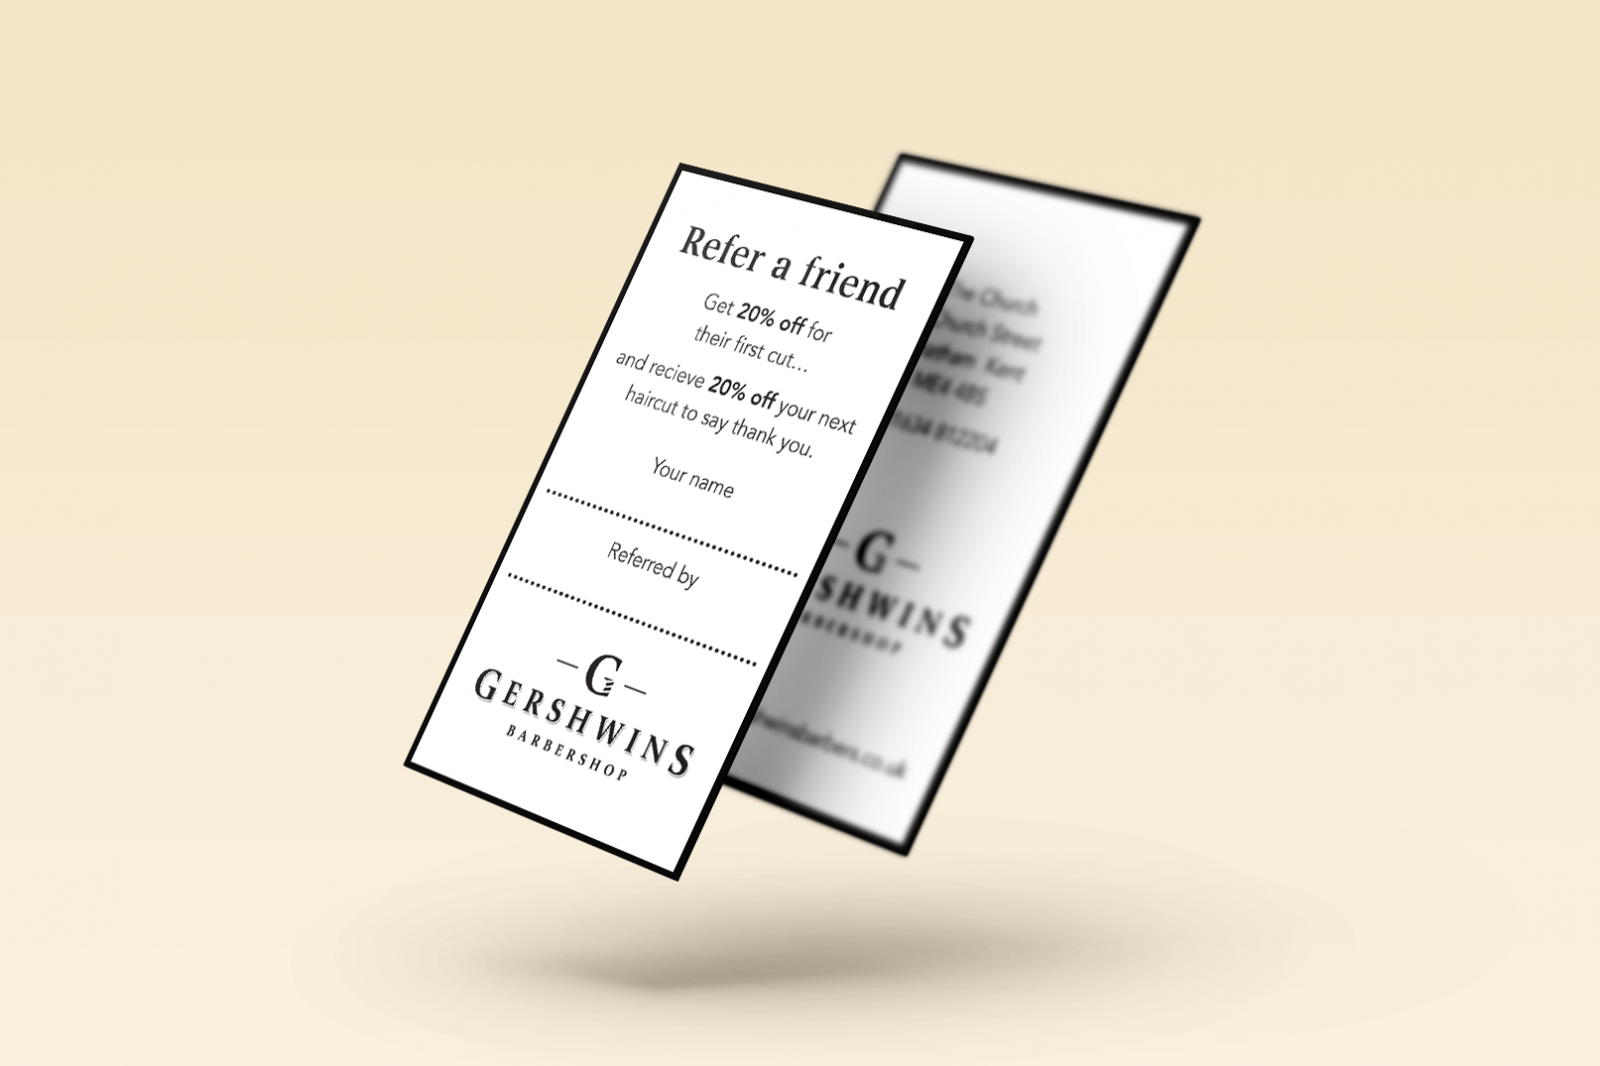 Gershwins-card-design-agency-graphic-design-canterbury.png